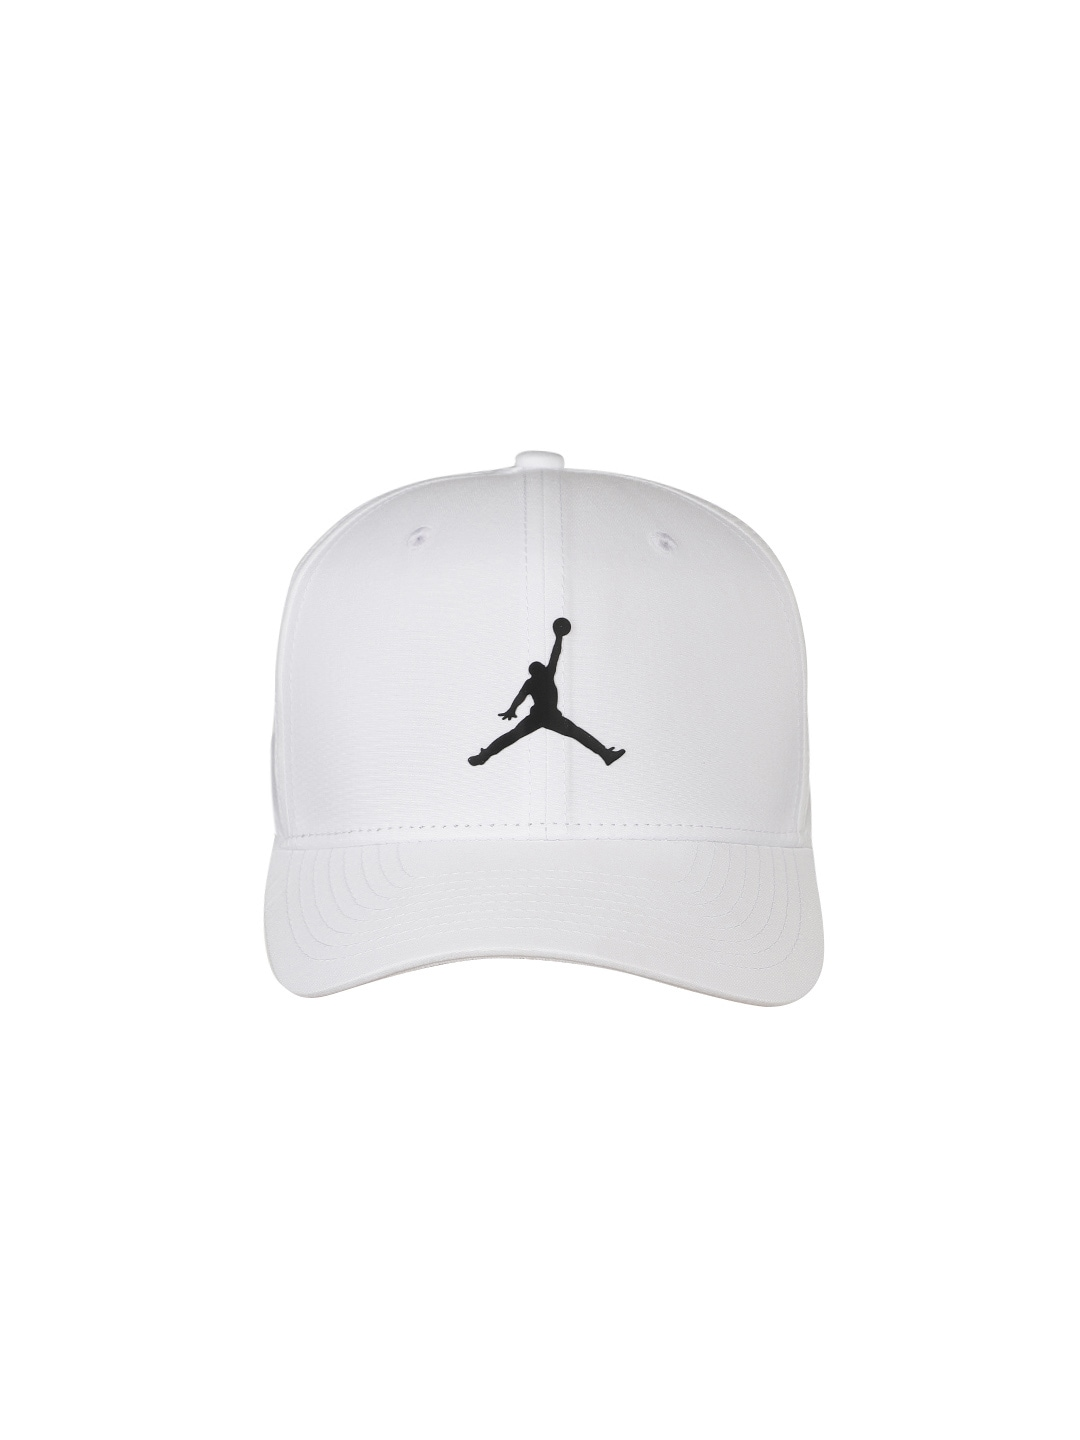 57b2cbb57 Nike Men Basketball Caps - Buy Nike Men Basketball Caps online in India